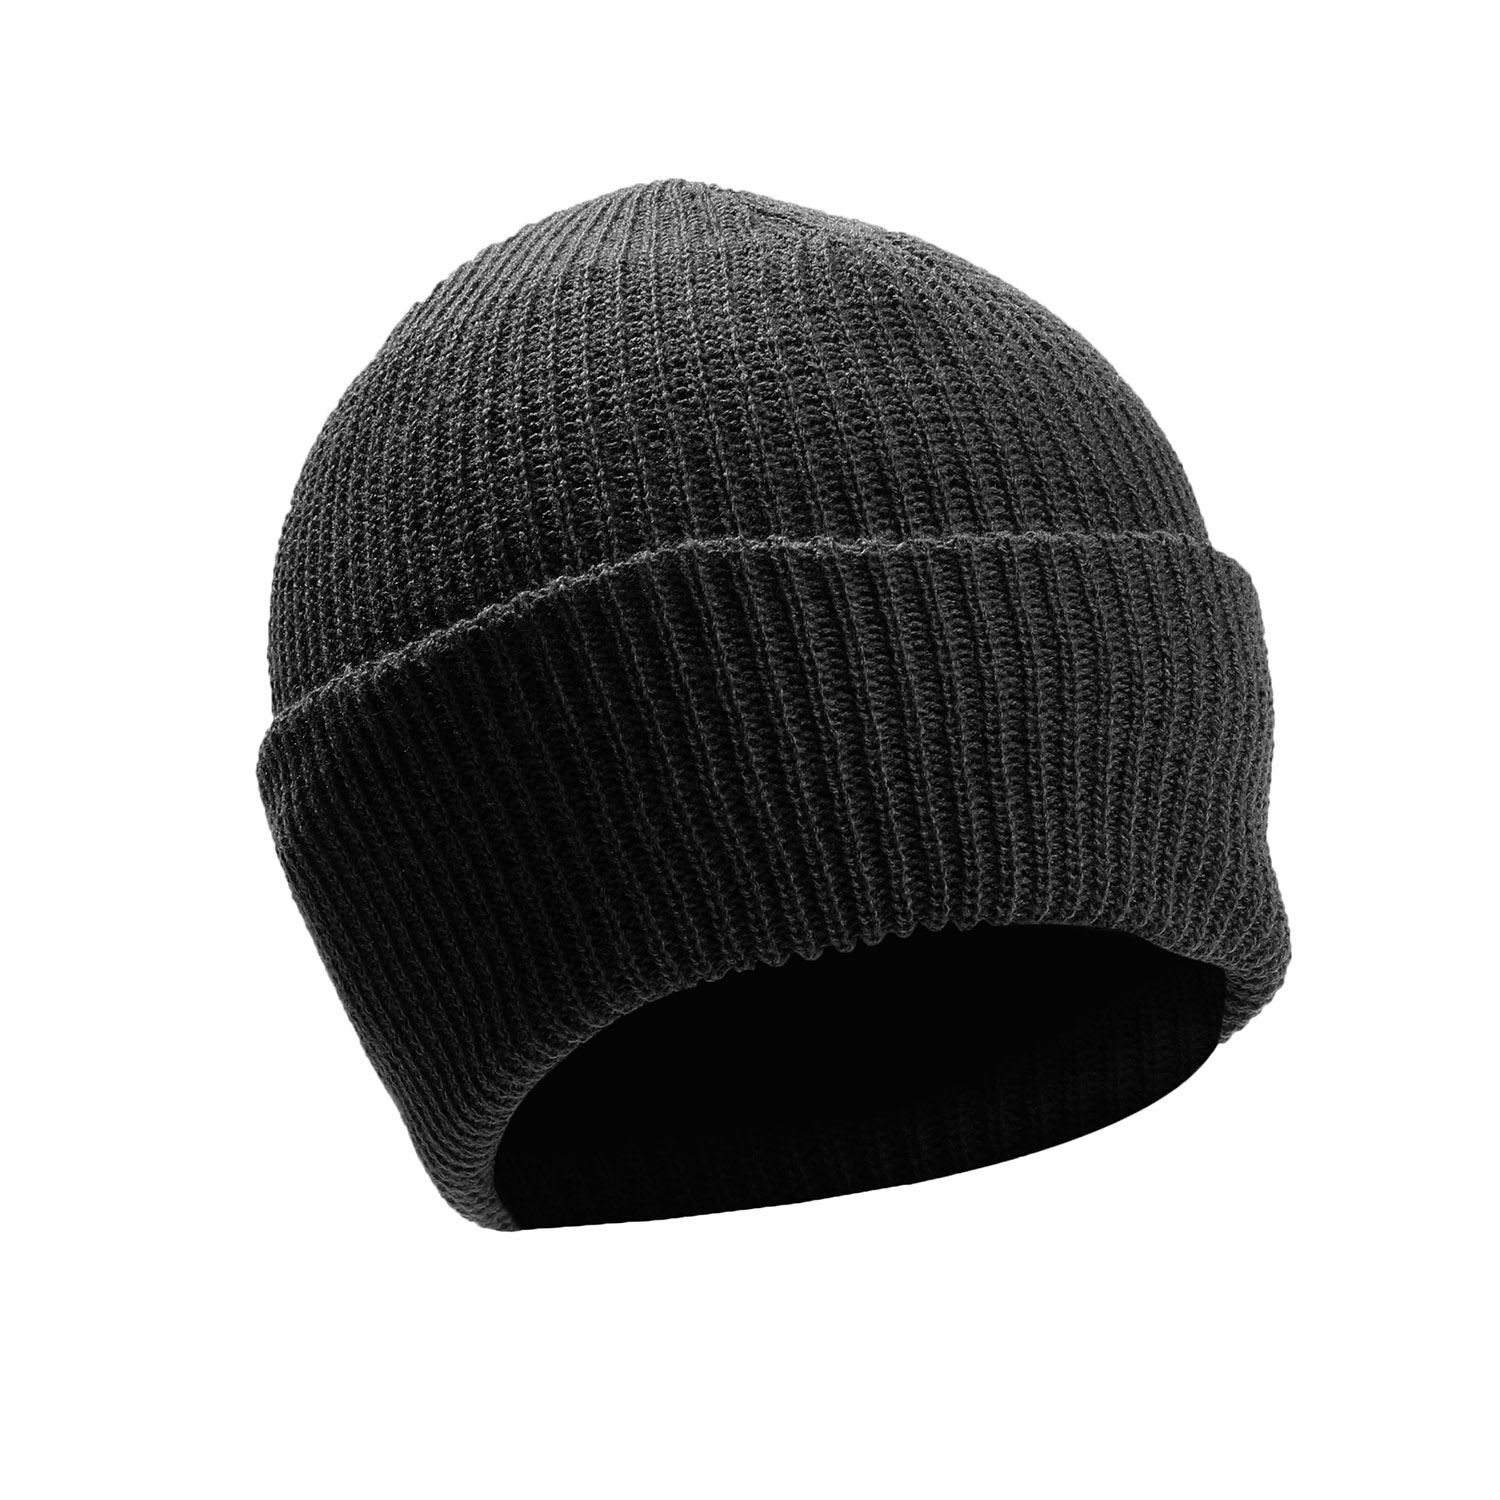 Rothco Wintuck Watch Cap